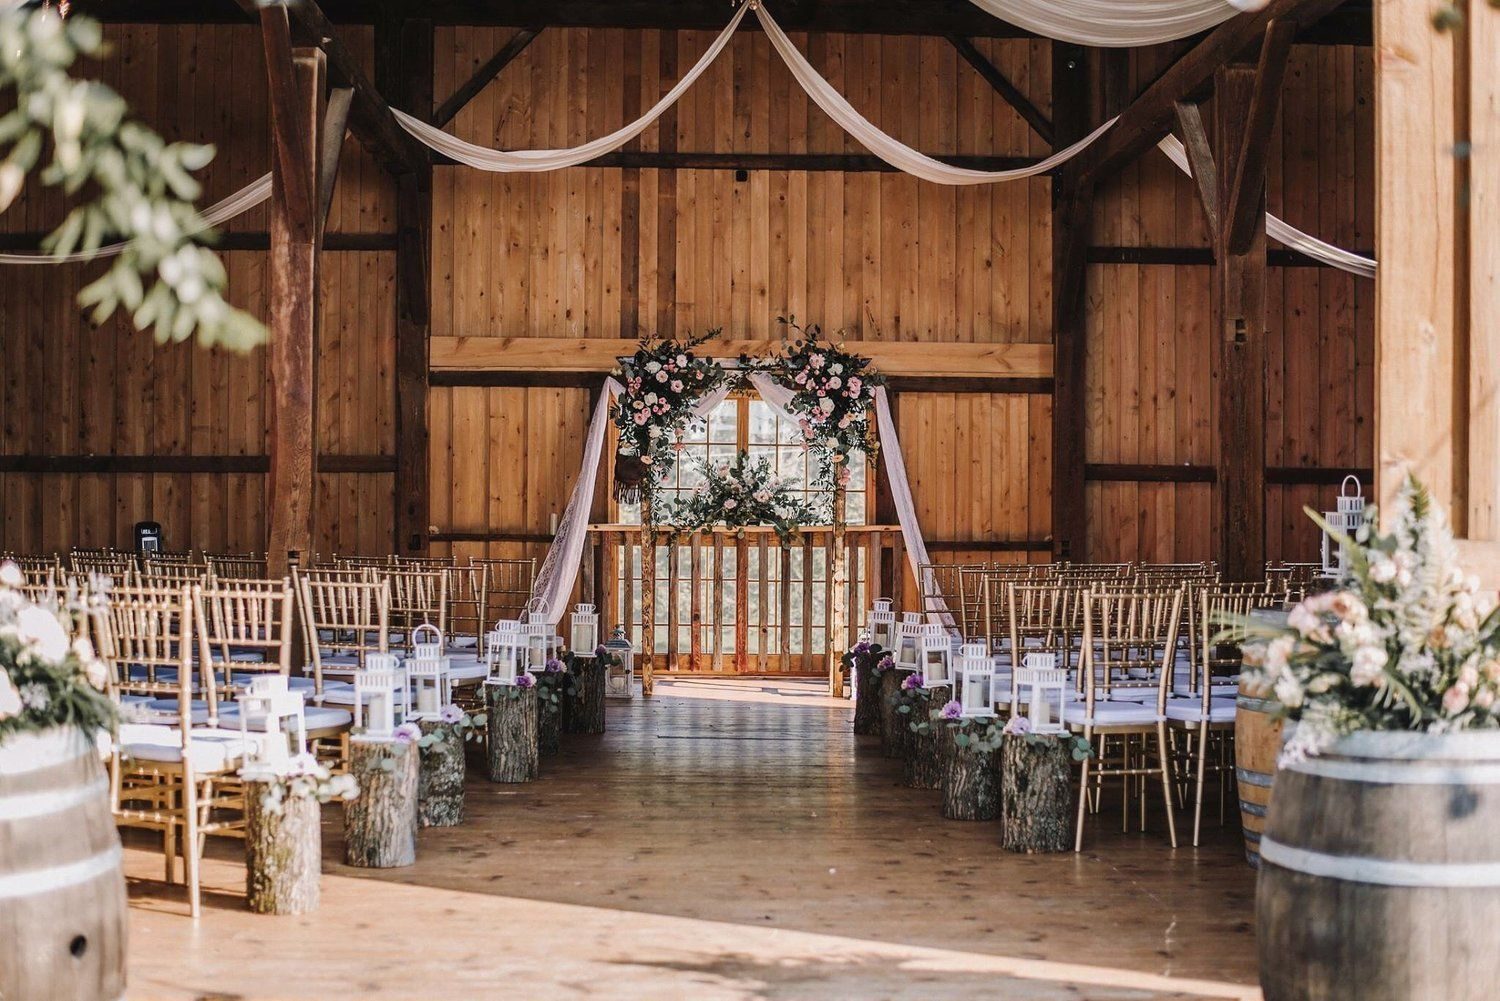 Homestead Blessings Barn Intimate Wedding Venues In Upstate Ny